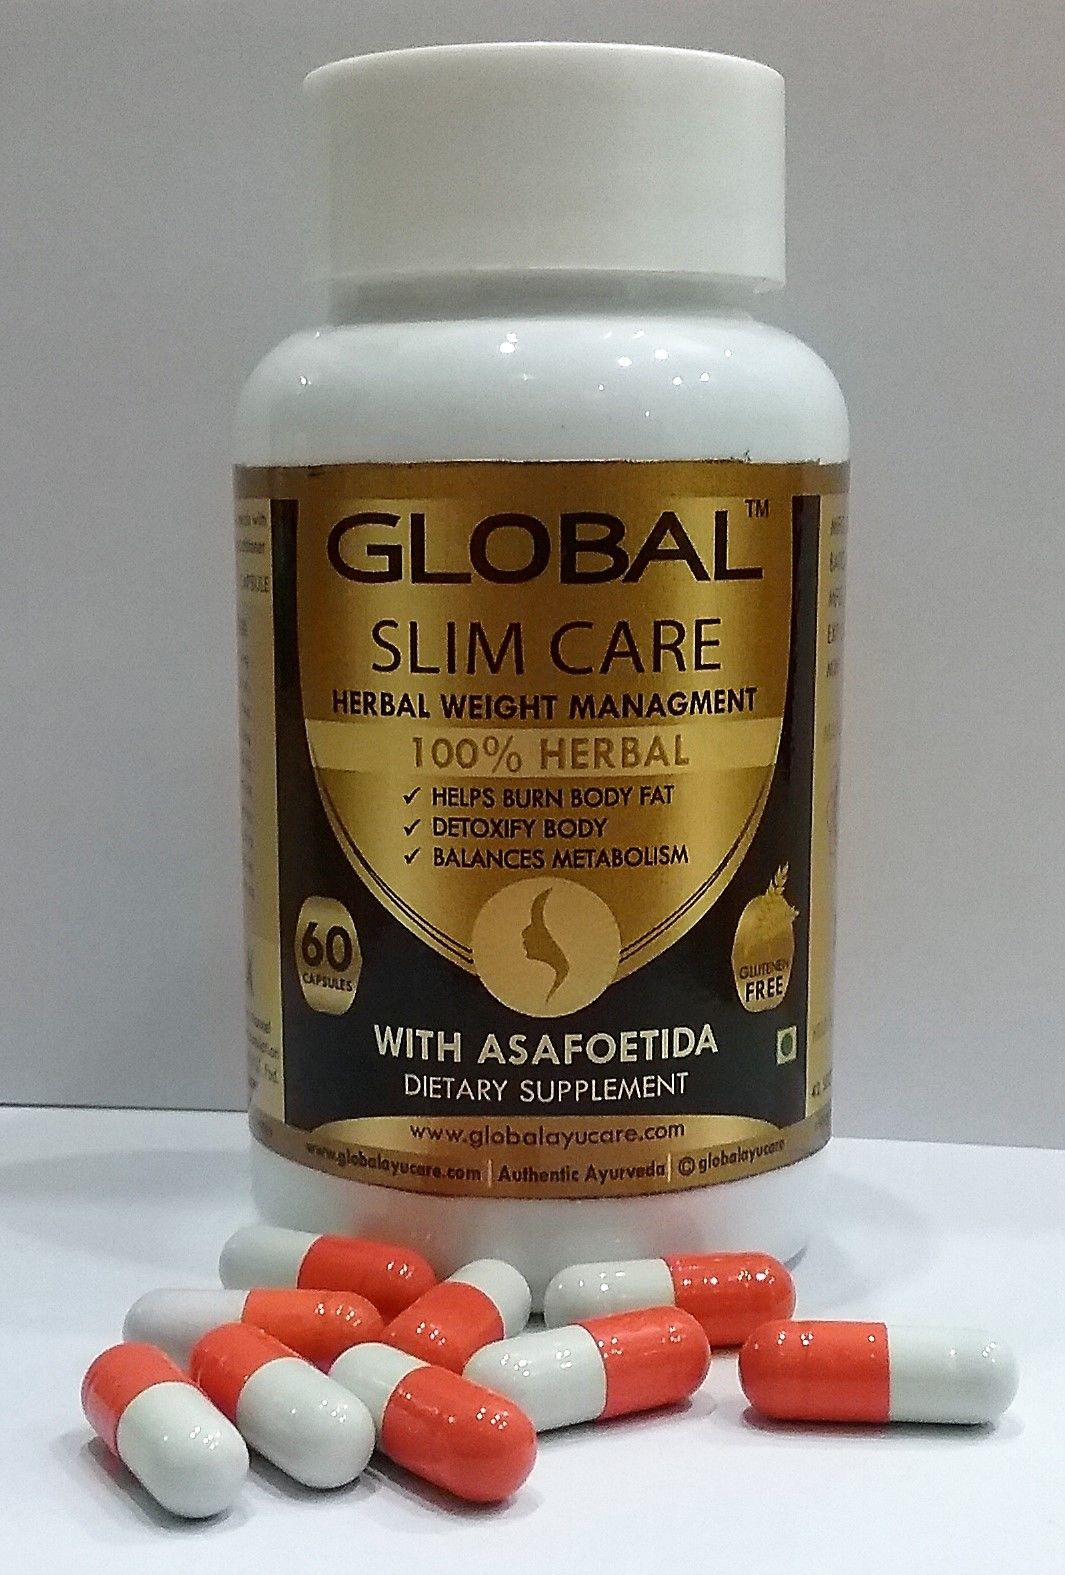 Global Slim Care Capsules For Weight Loss